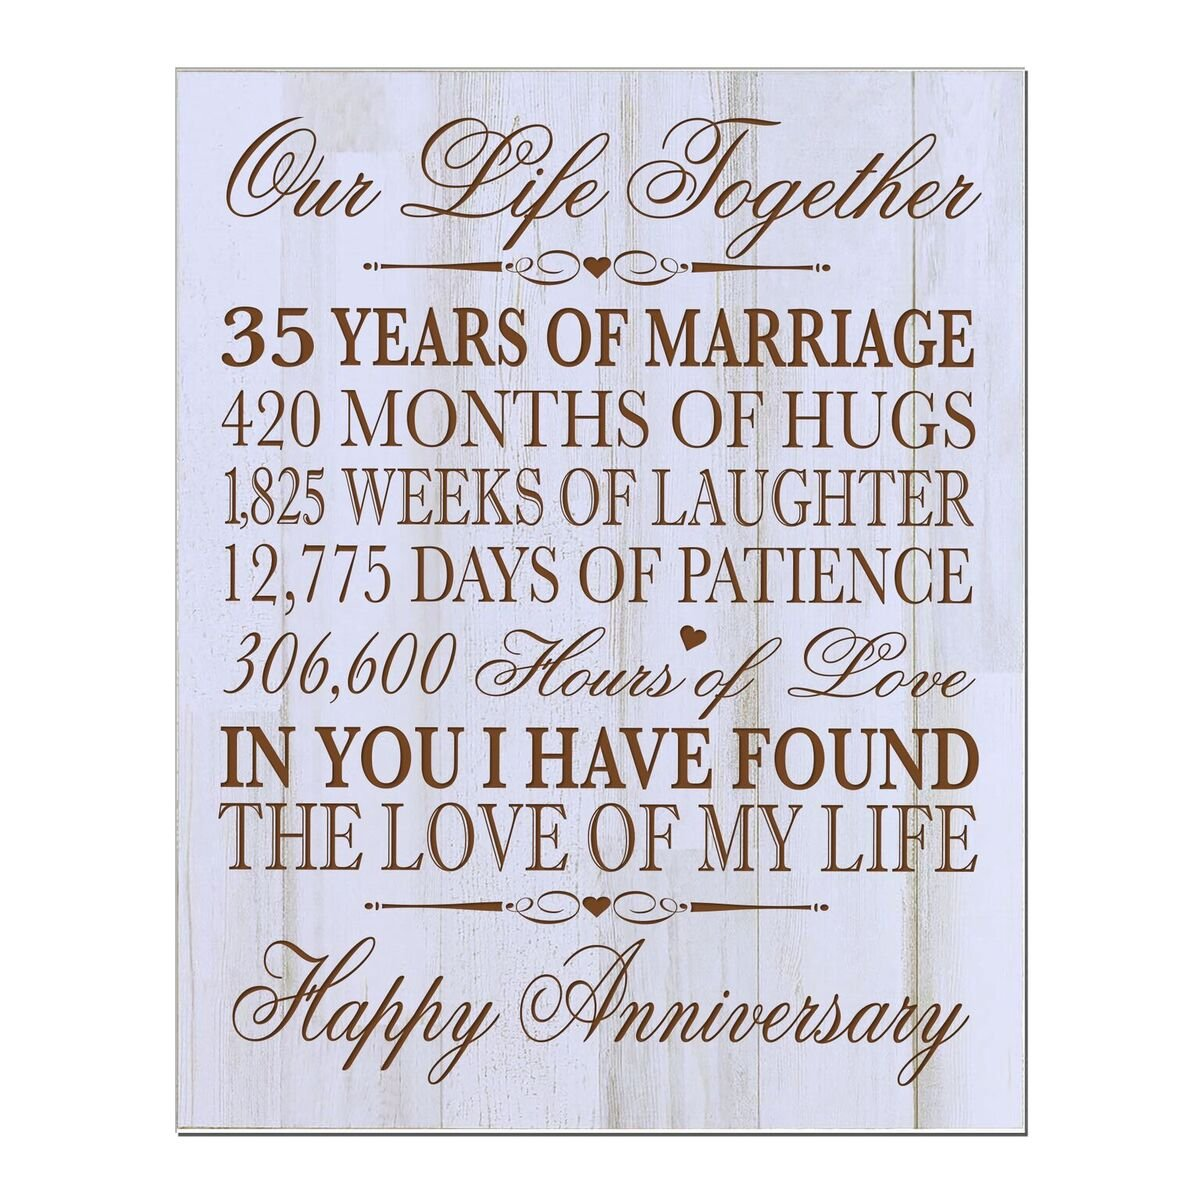 35th Wedding Anniversary Wall Plaque Gifts for Couple,custom Made 35th Anniversary Gifts for Her Wall Plaque Special Dates to Remember By LifeSong Milestones (Distressed White)